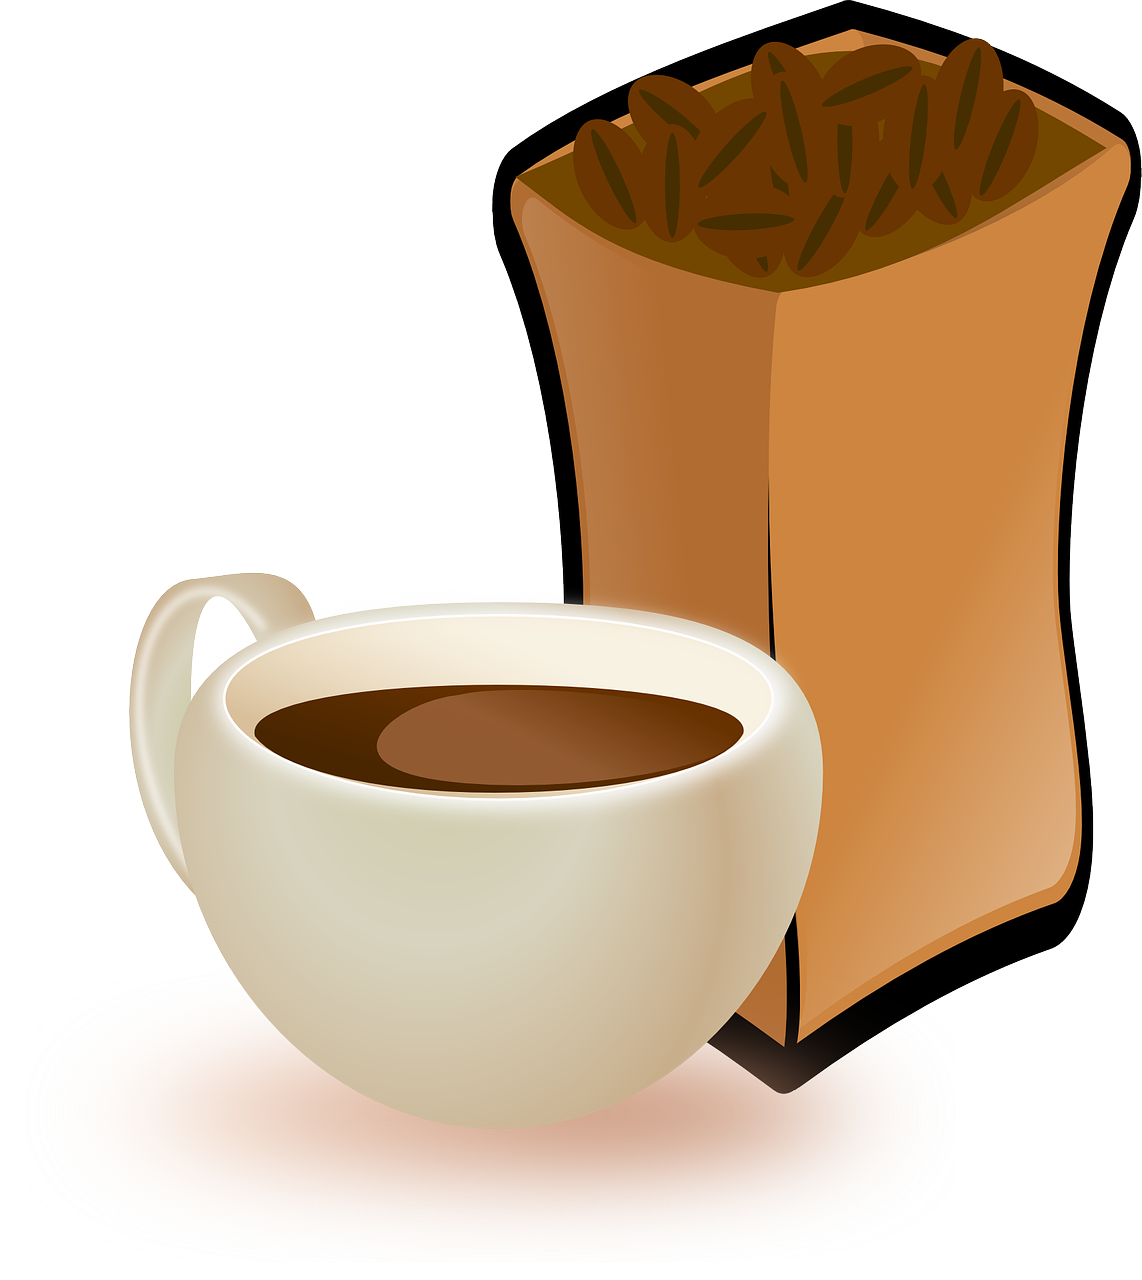 Food clipart cafe. Cup coffee beans drink